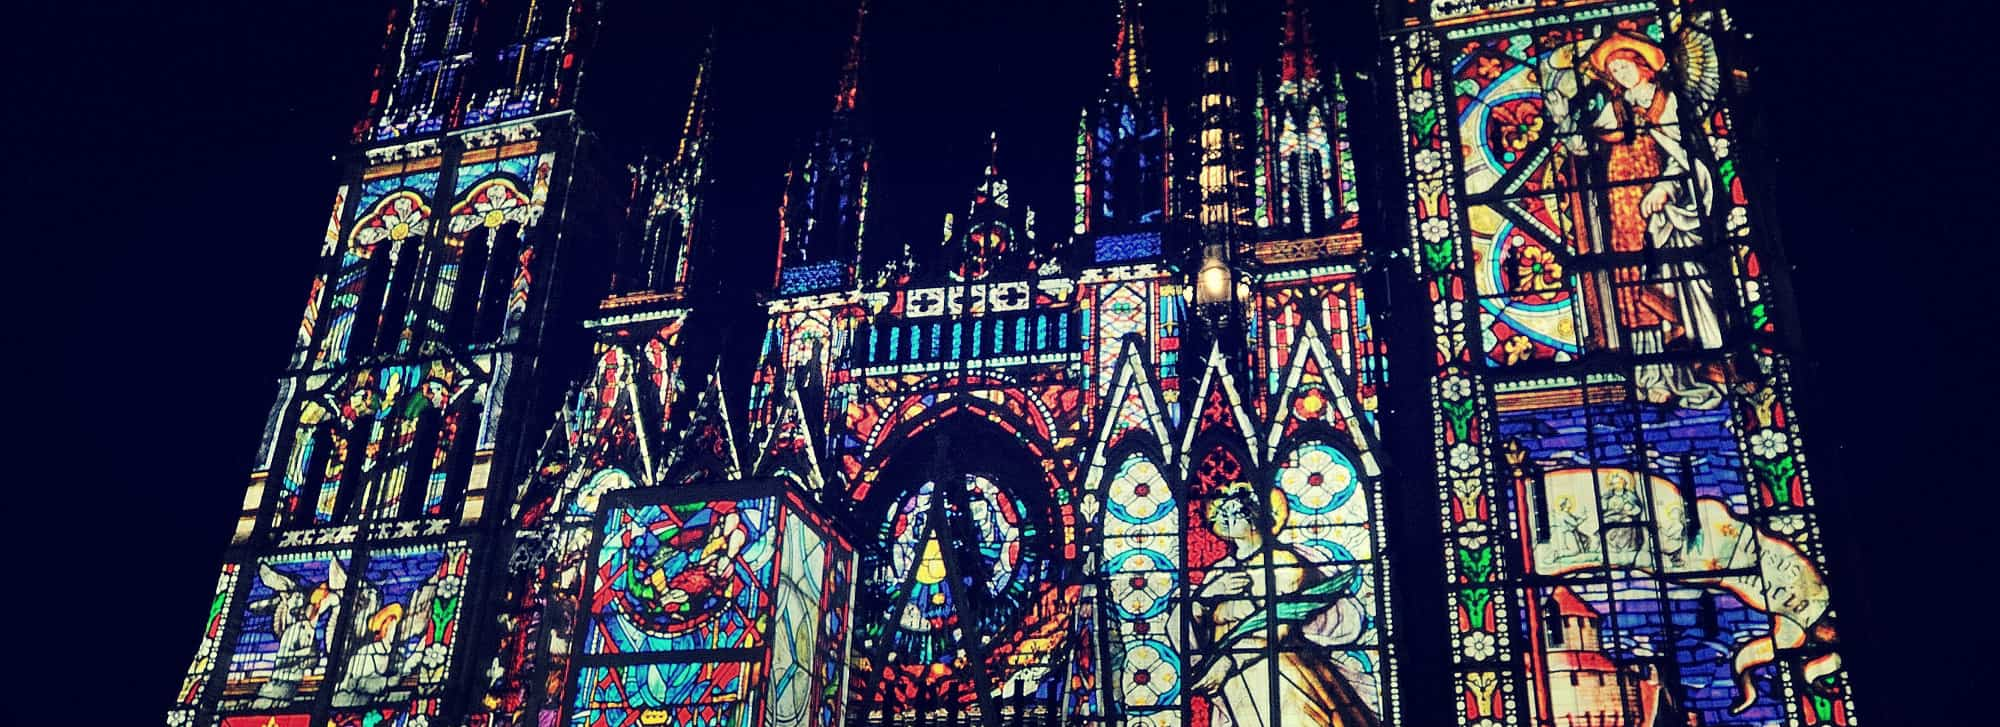 Spectacle Cathedrale Lumier